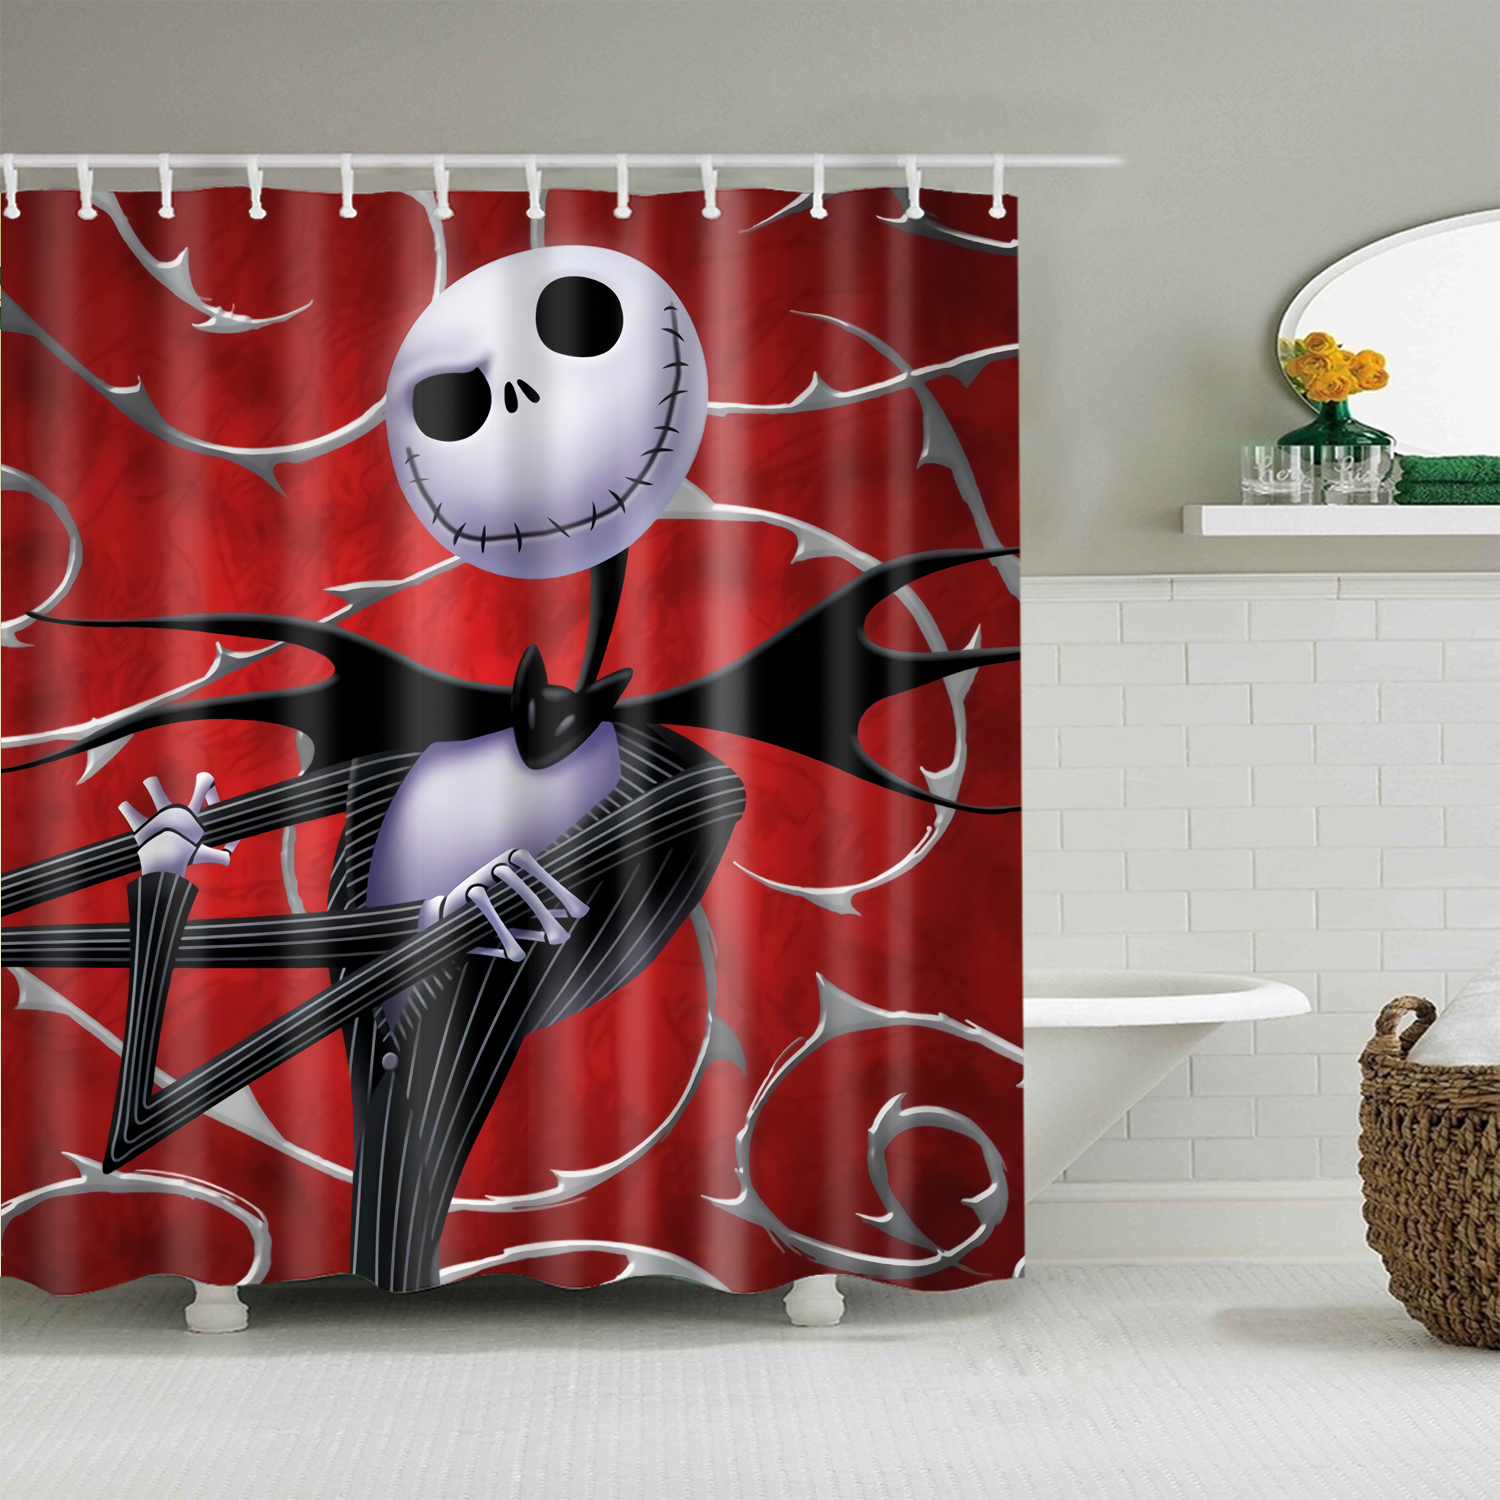 Shower Curtains Hooks Liners Knbob Shower Curtains In